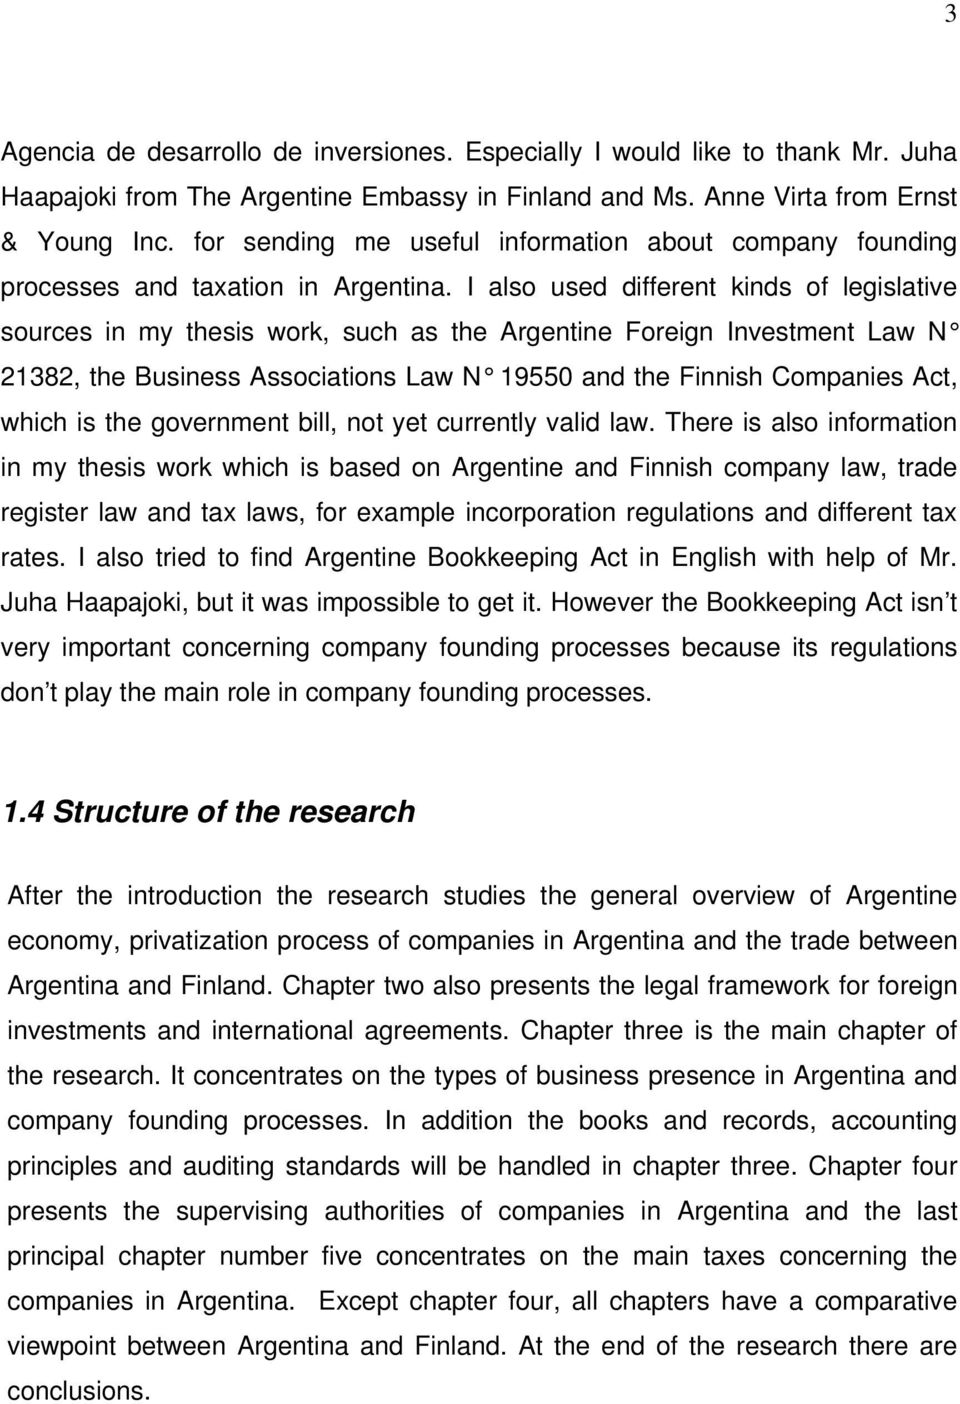 I also used different kinds of legislative sources in my thesis work, such as the Argentine Foreign Investment Law N 21382, the Business Associations Law N 19550 and the Finnish Companies Act, which